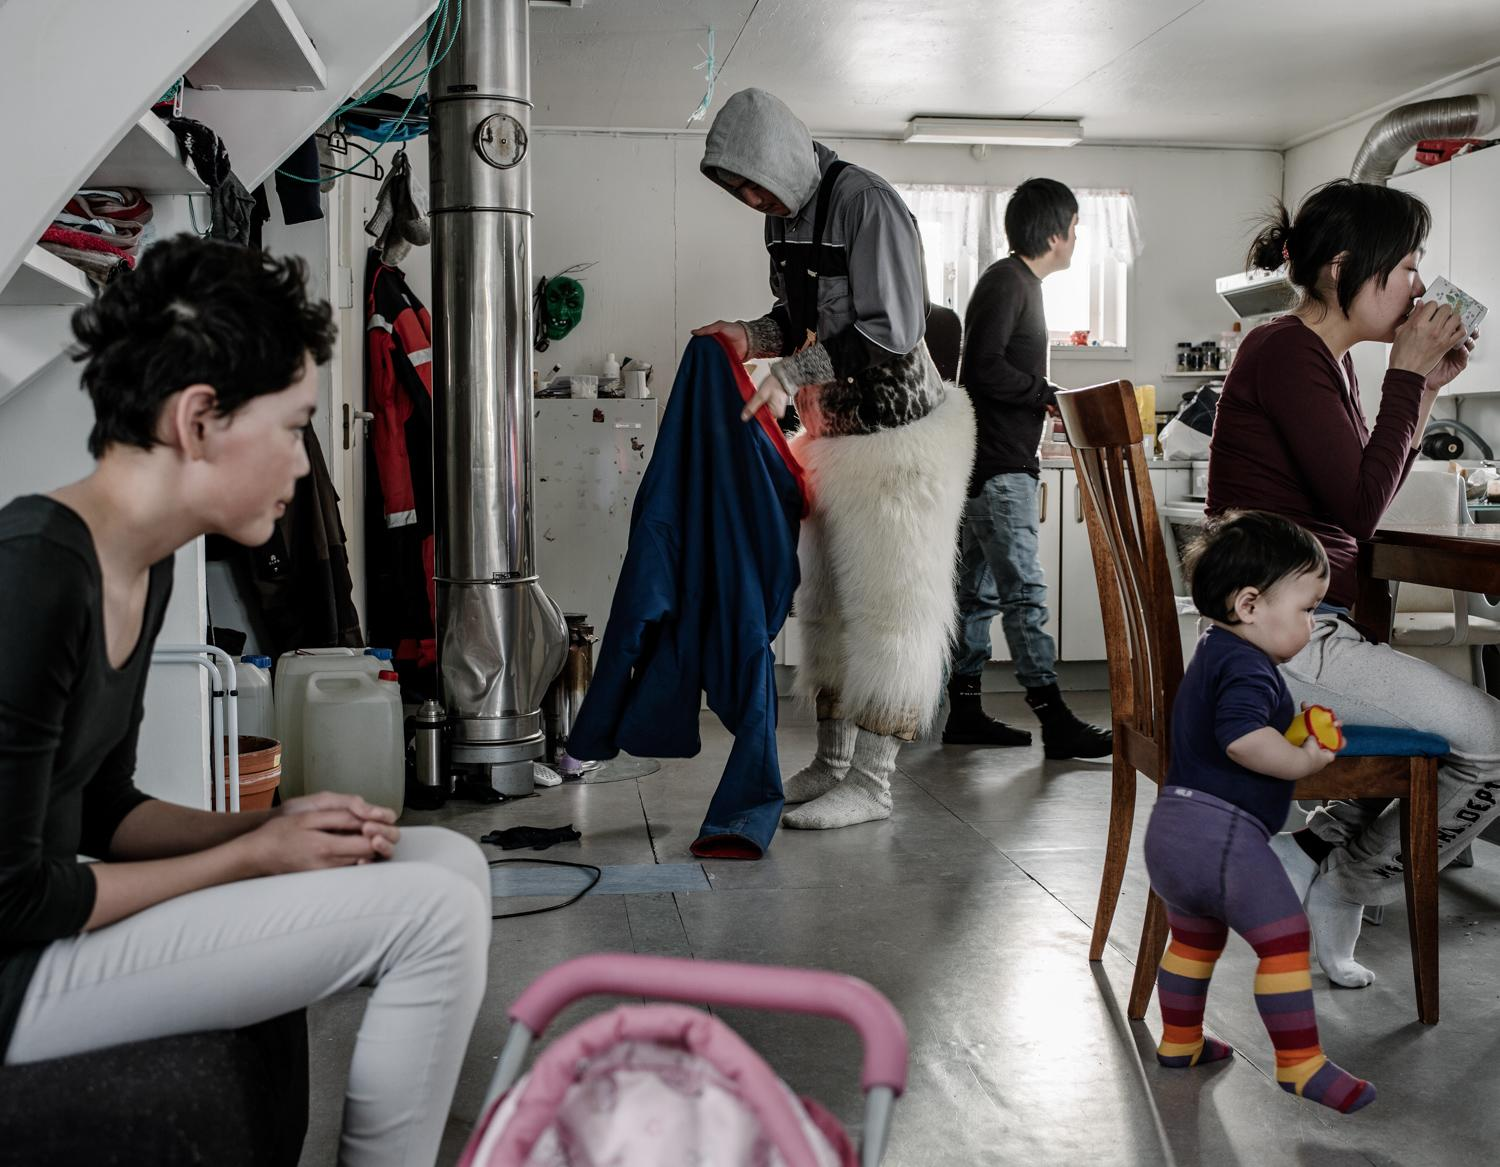 Photographer documents climate change, Greenland's Inuits